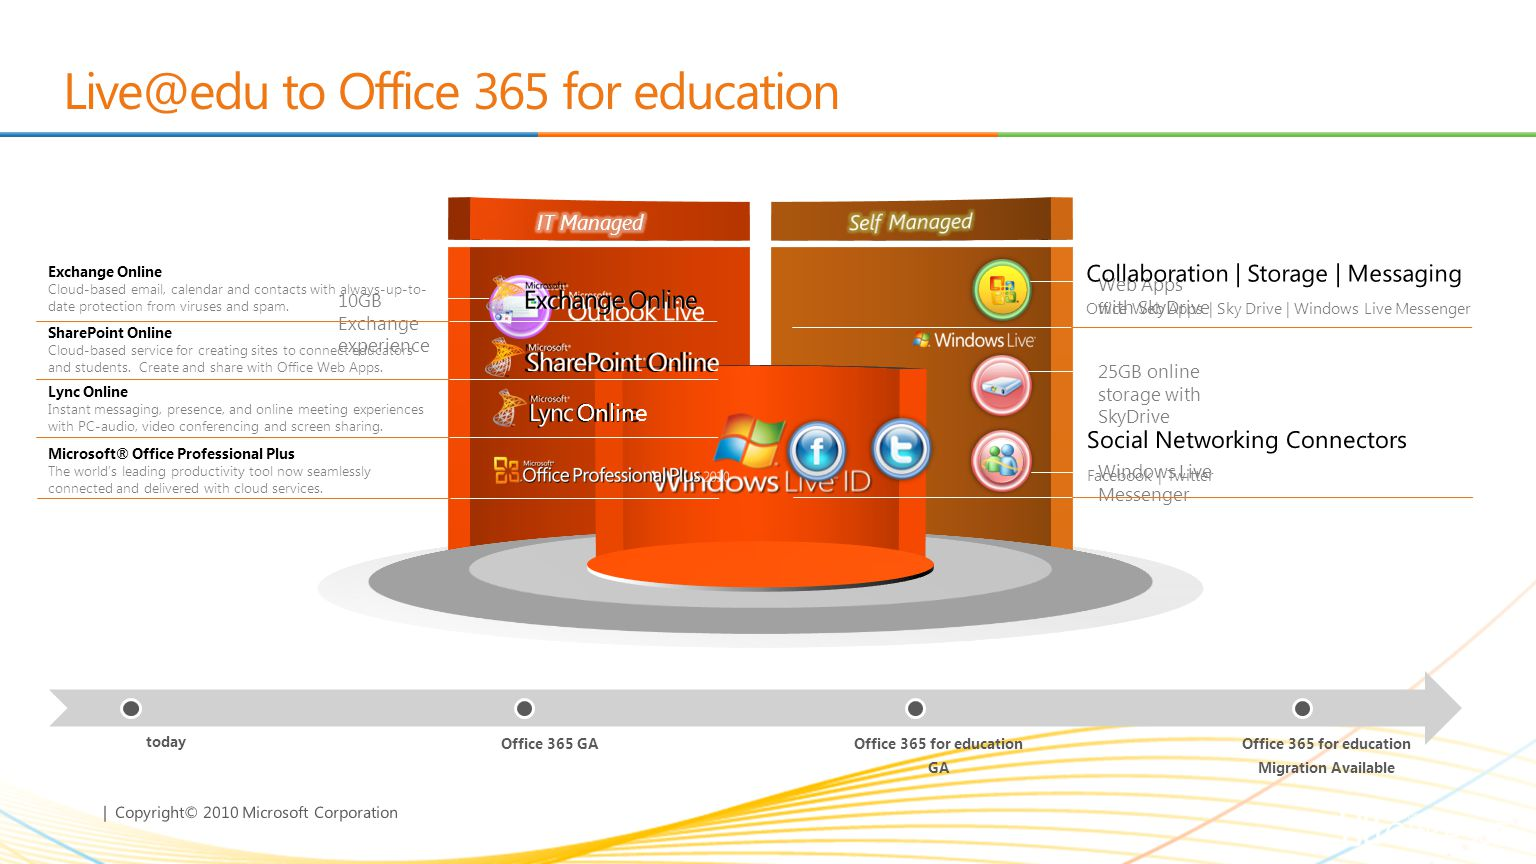 Live@edu to Office 365 for education